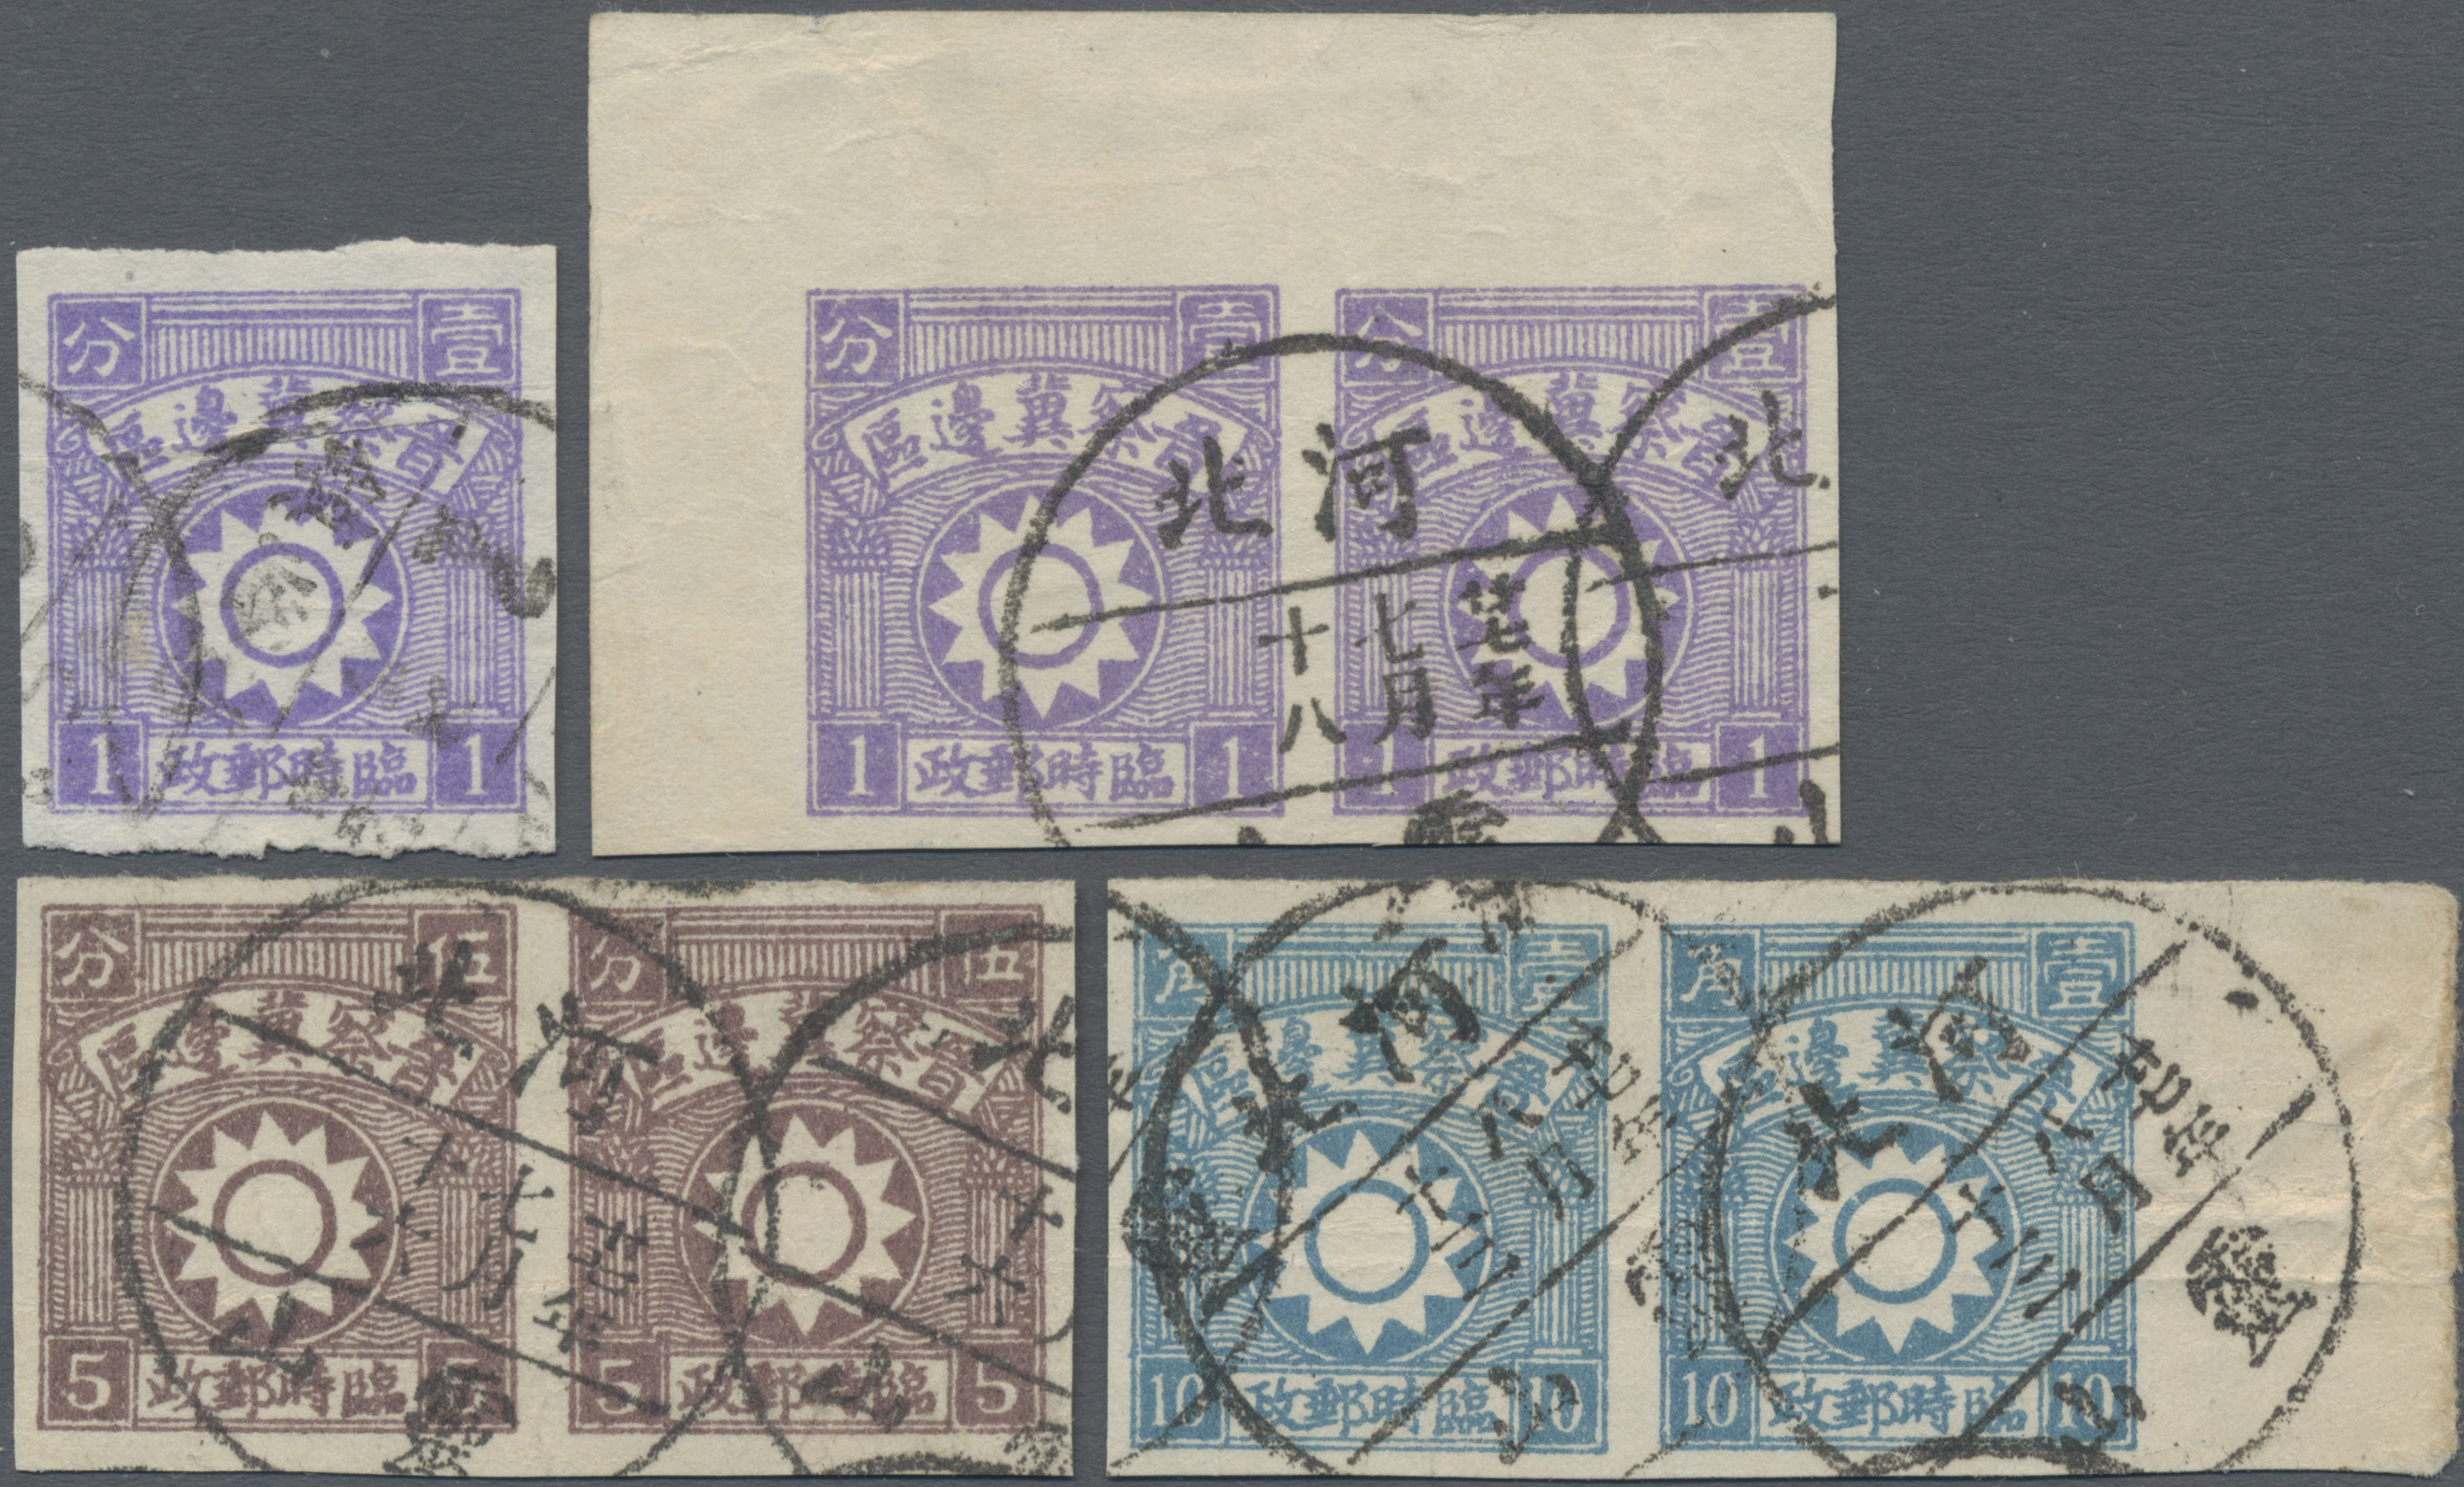 Lot 05503 - China - Volksrepublik - Provinzen  -  Auktionshaus Christoph Gärtner GmbH & Co. KG Sale #45- Special Auction China